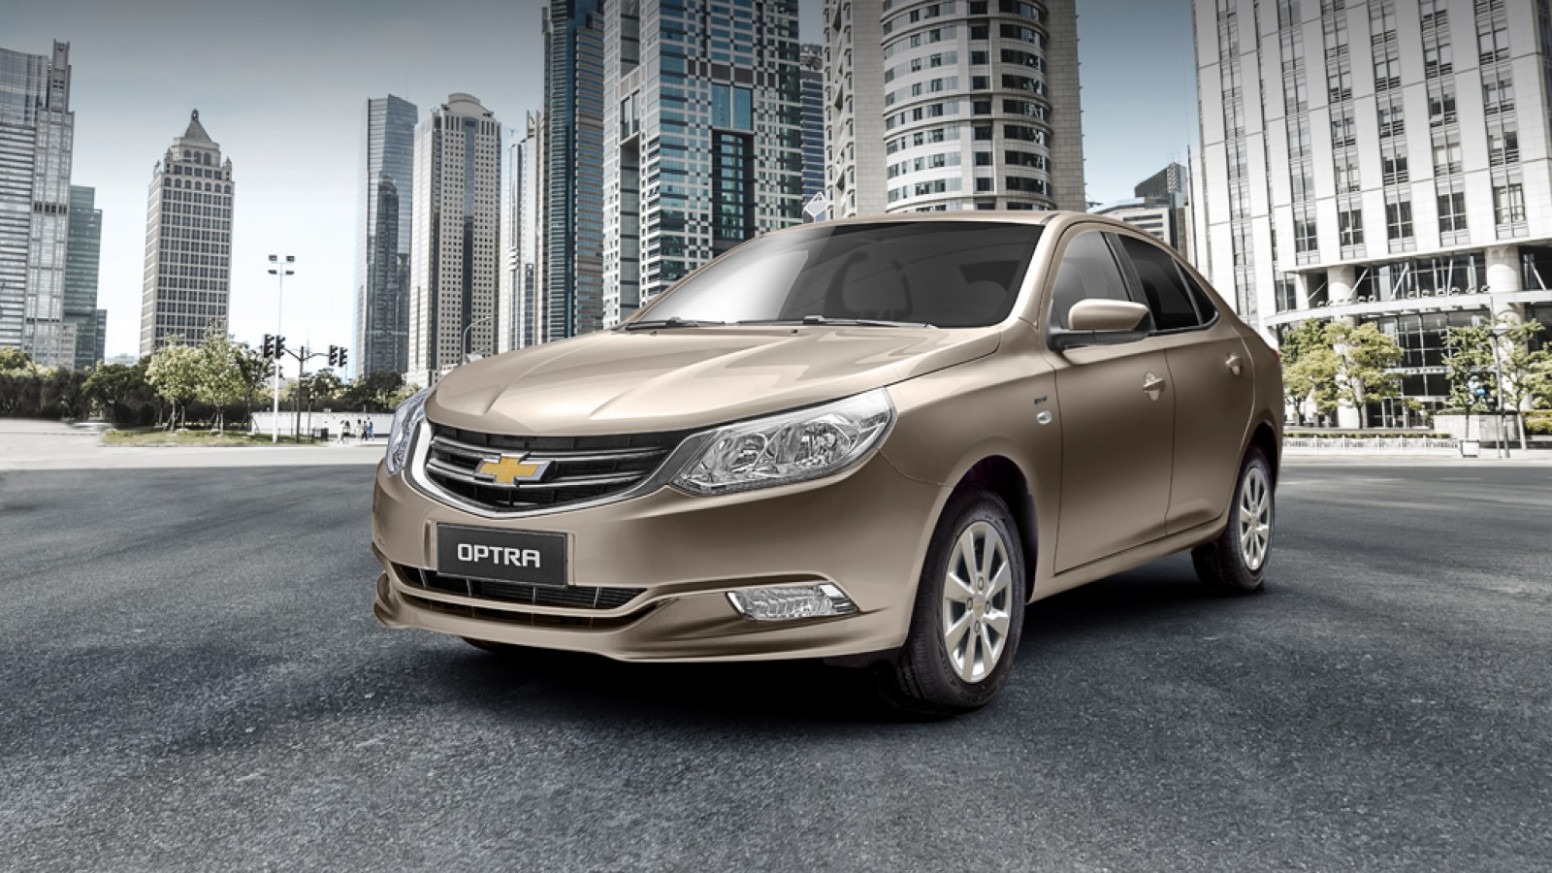 Chevrolet Optra Price in Egypt - New Chevrolet Optra Photos and ..